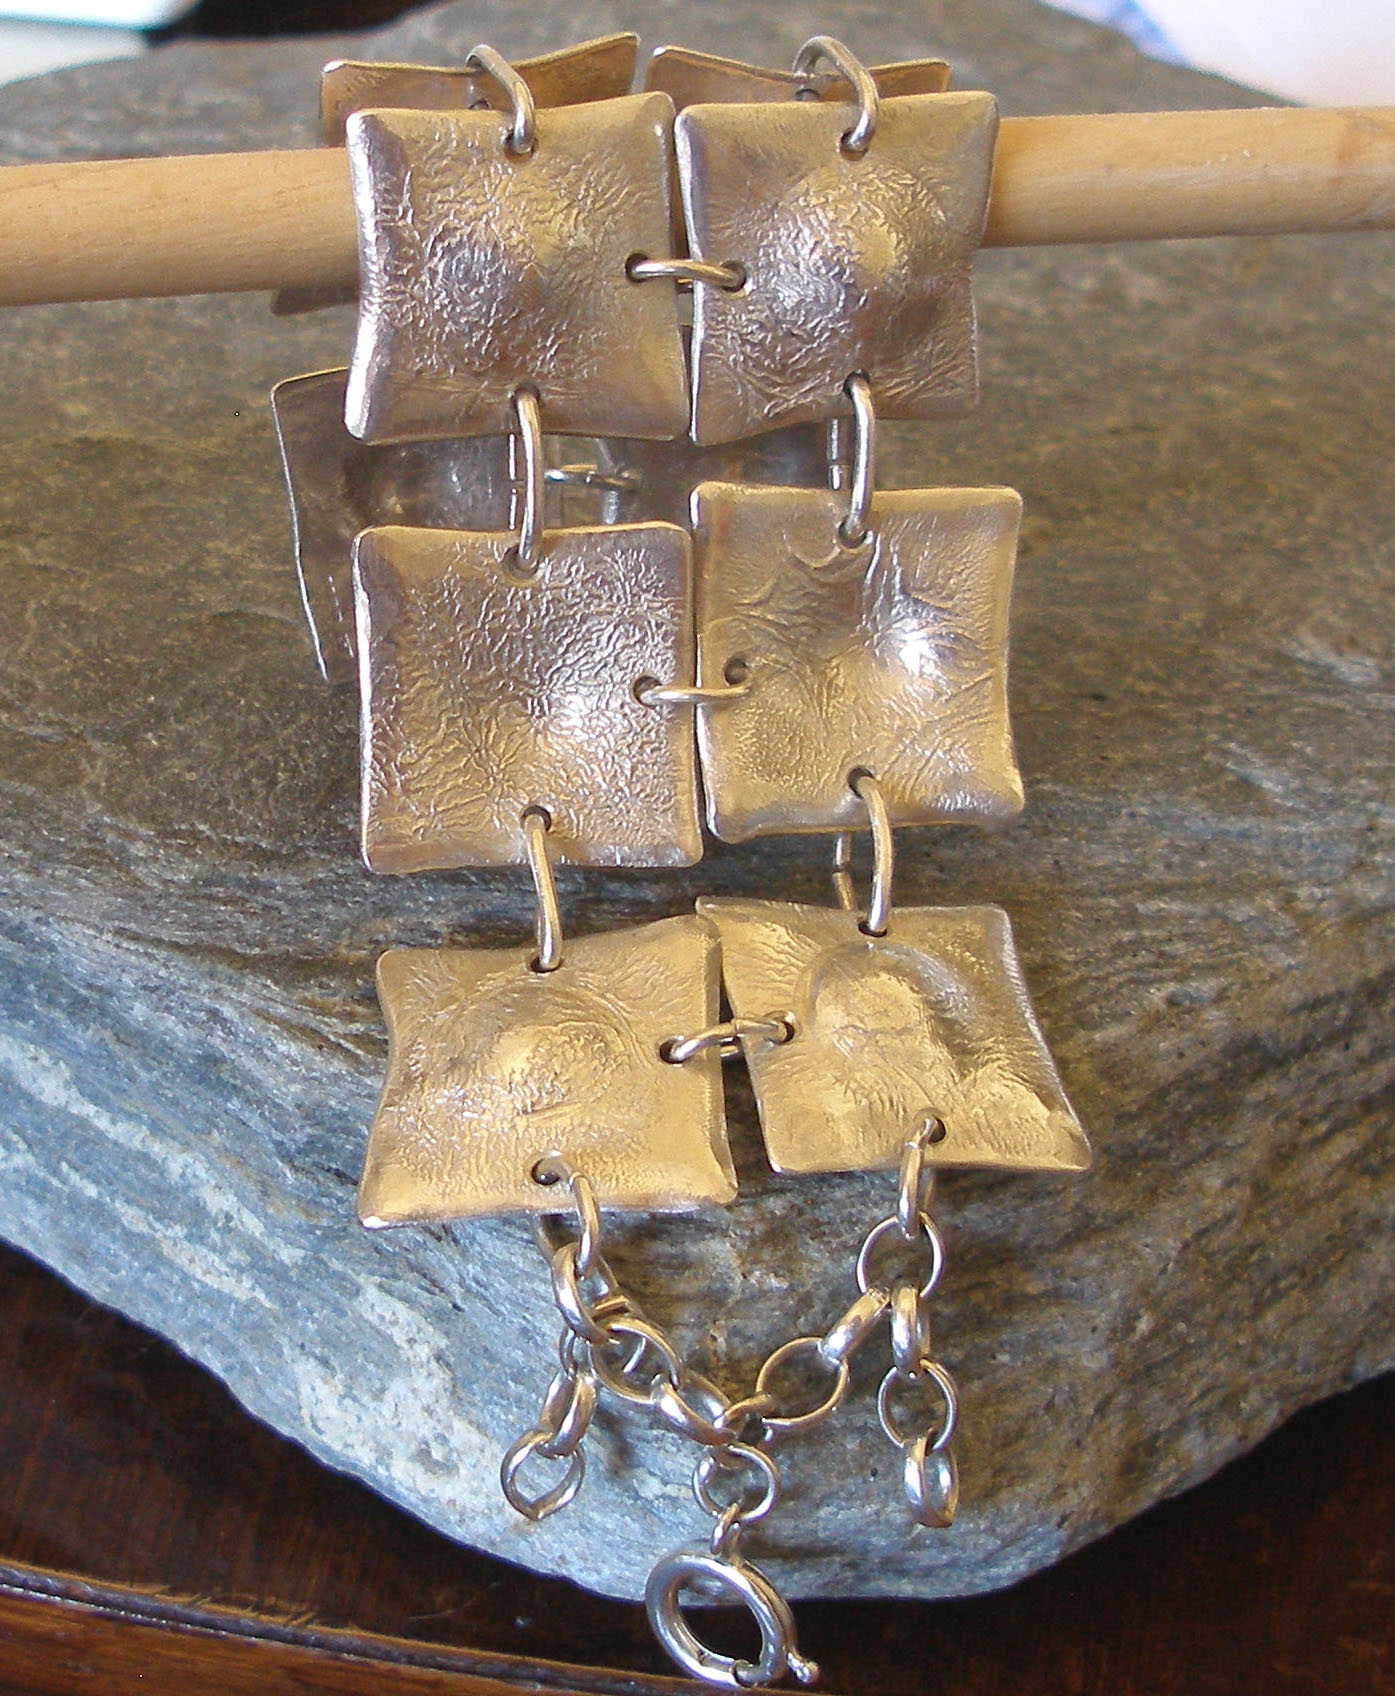 10 Squares Heavy Textured Sterling Silver Bracelet Cuff